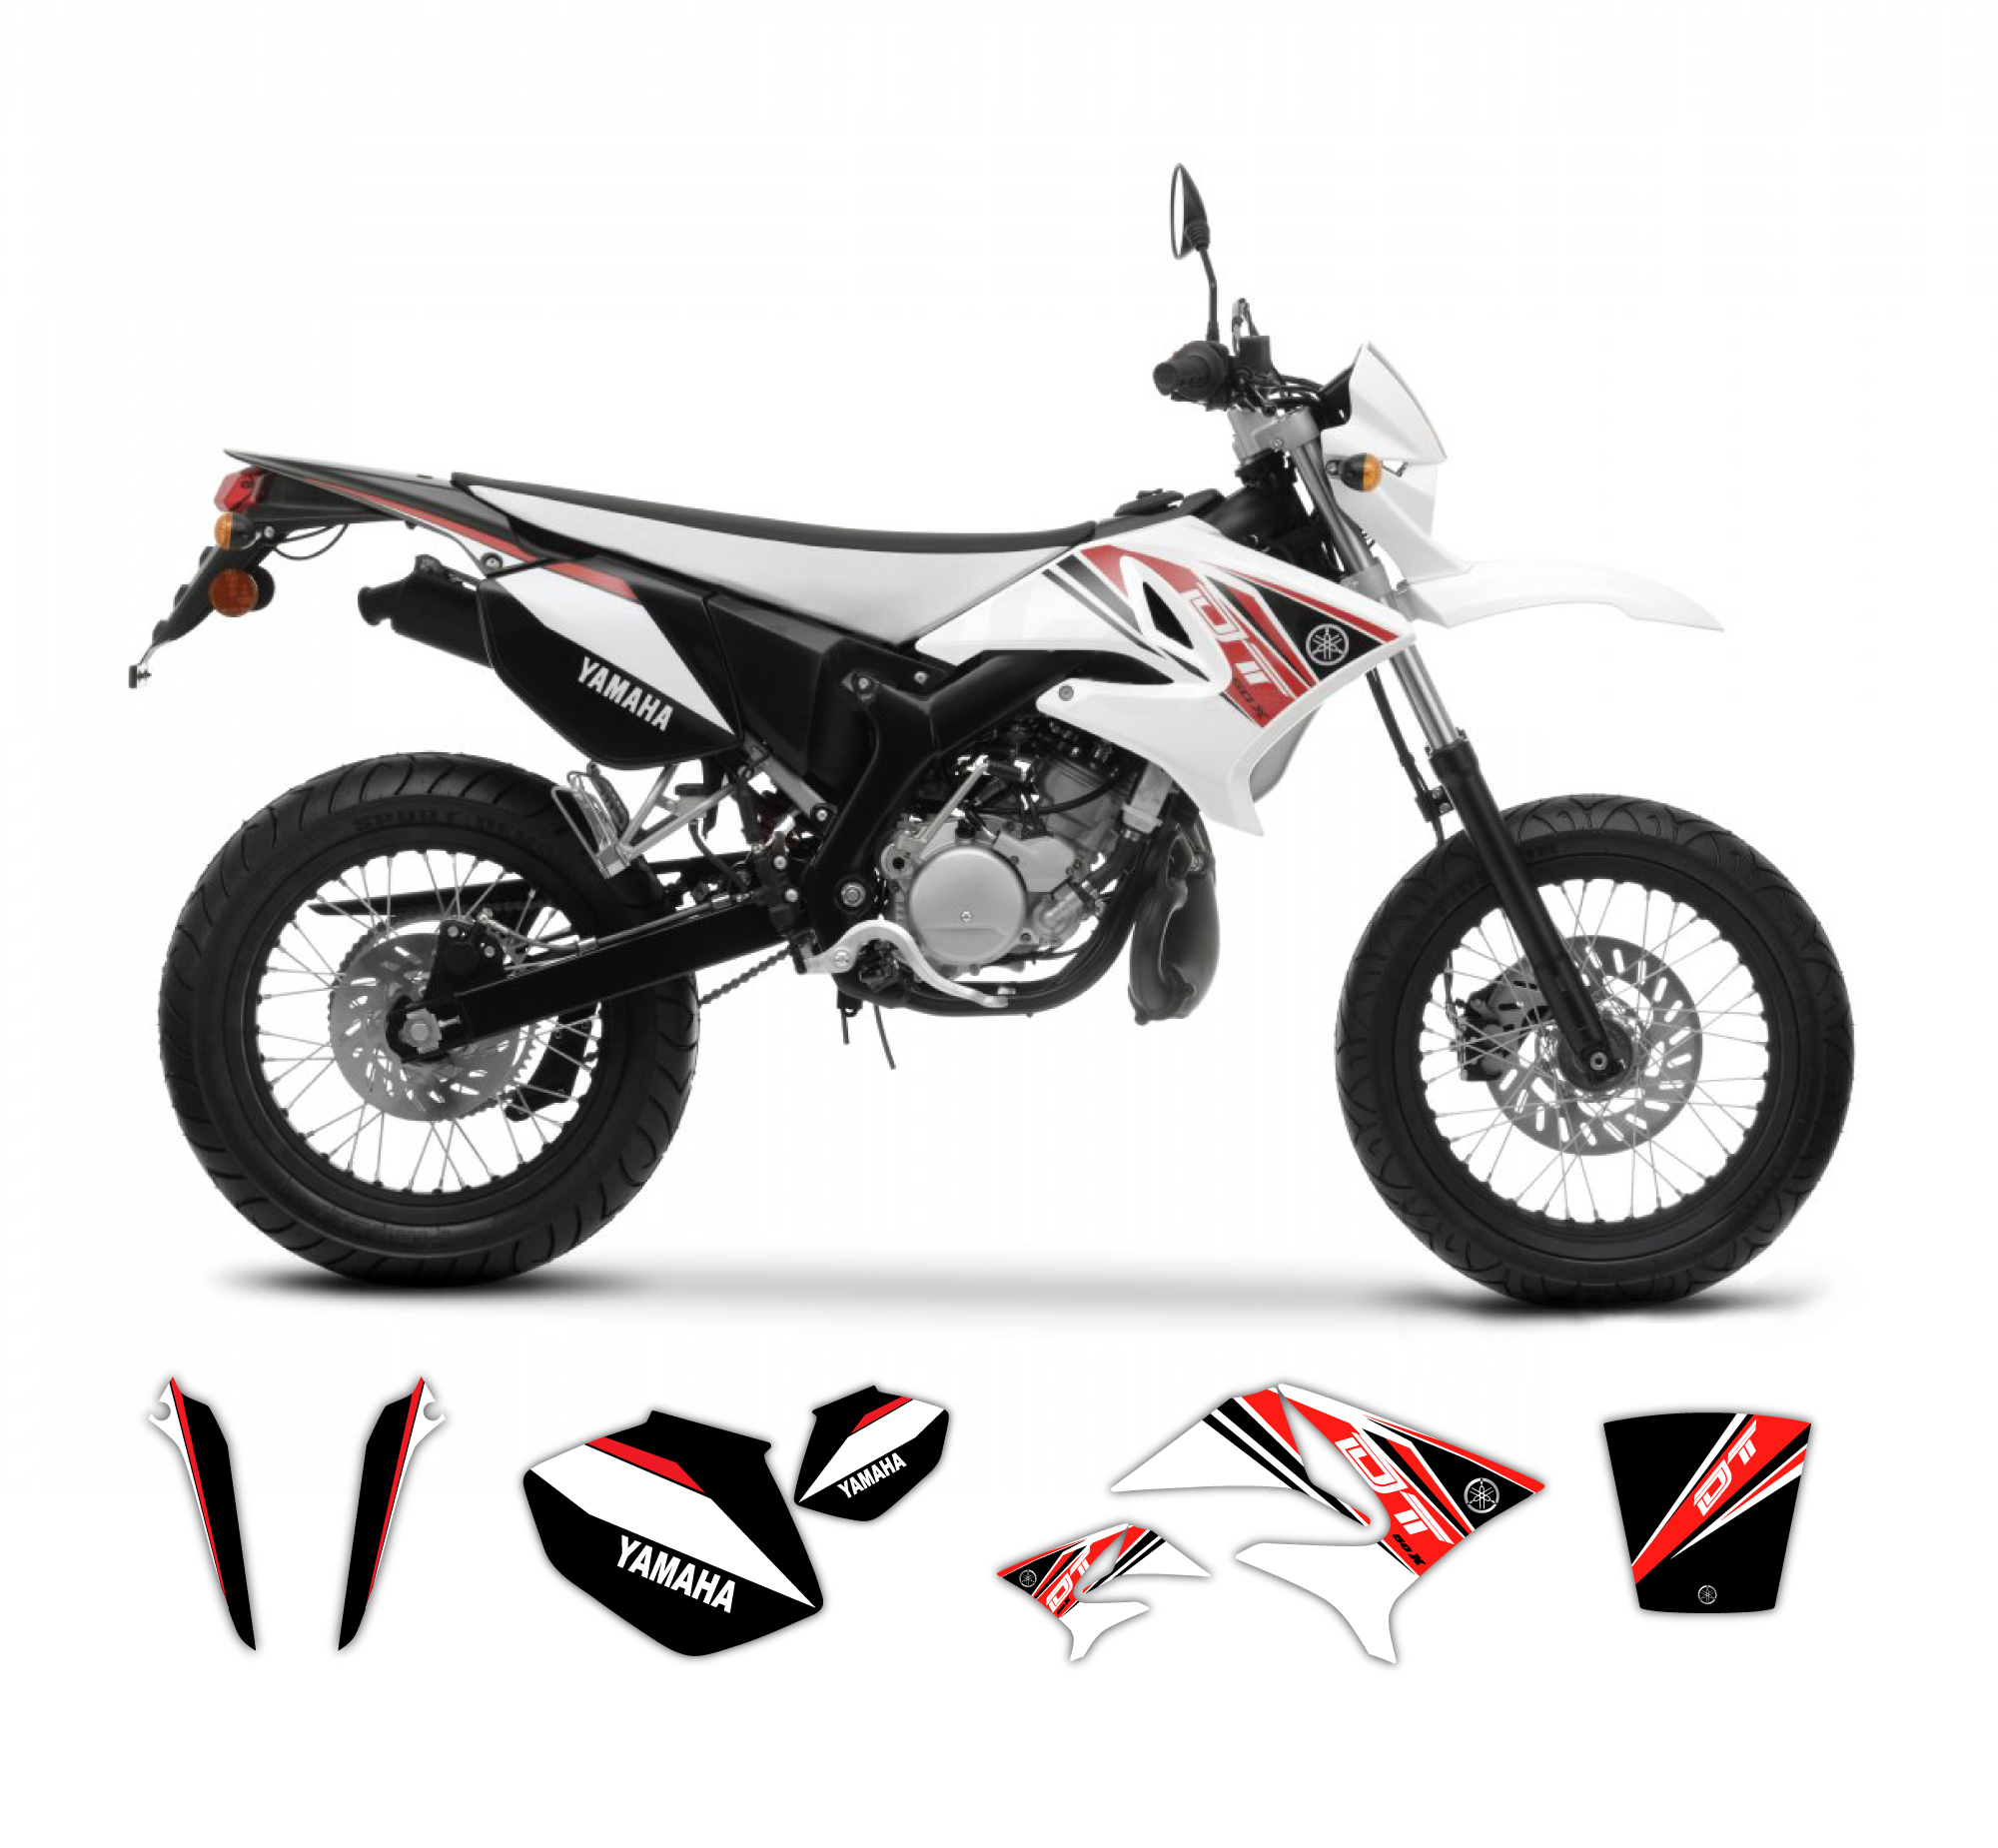 yamaha dt 50 x r replica graphics kit 2009 model tmx graphics. Black Bedroom Furniture Sets. Home Design Ideas